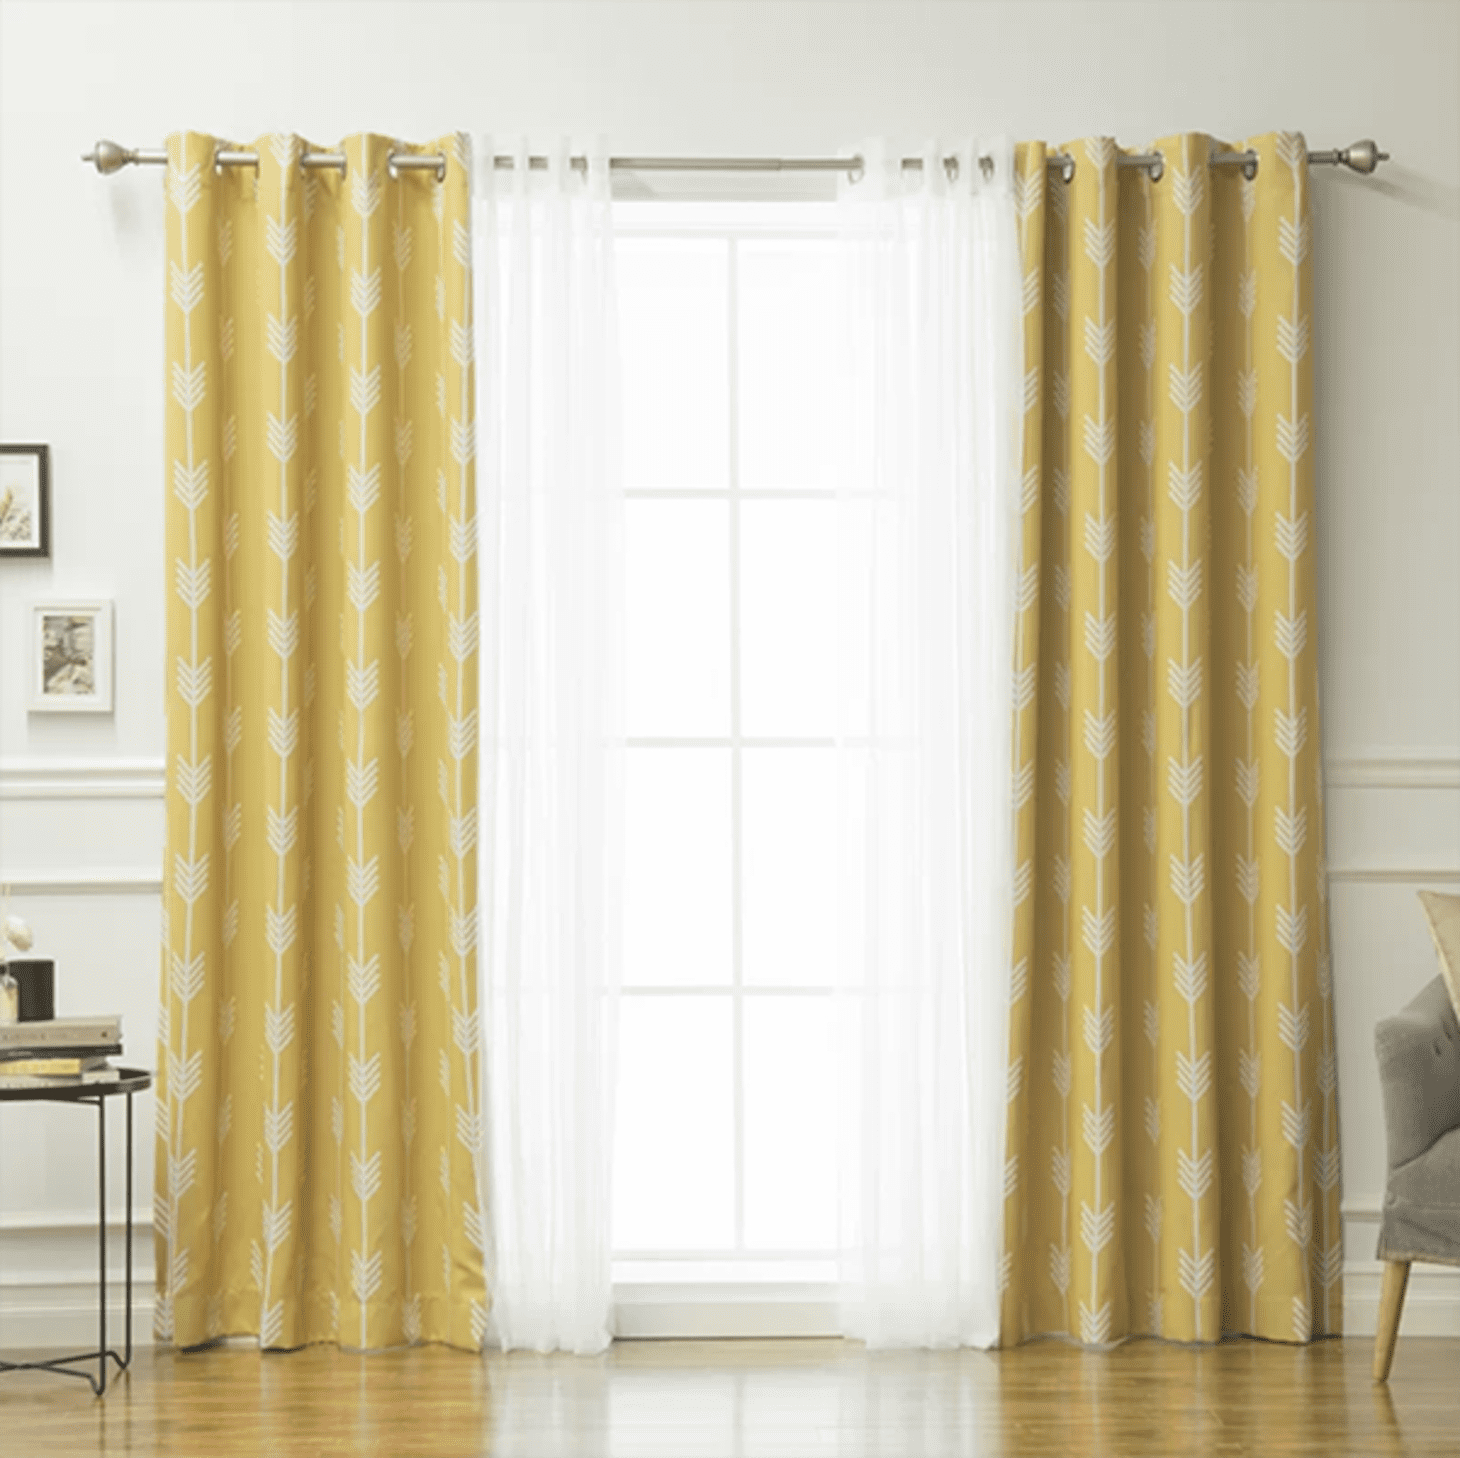 Best Insulated Blackout Curtains | Apartment Therapy Within Insulated Cotton Curtain Panel Pairs (View 11 of 20)